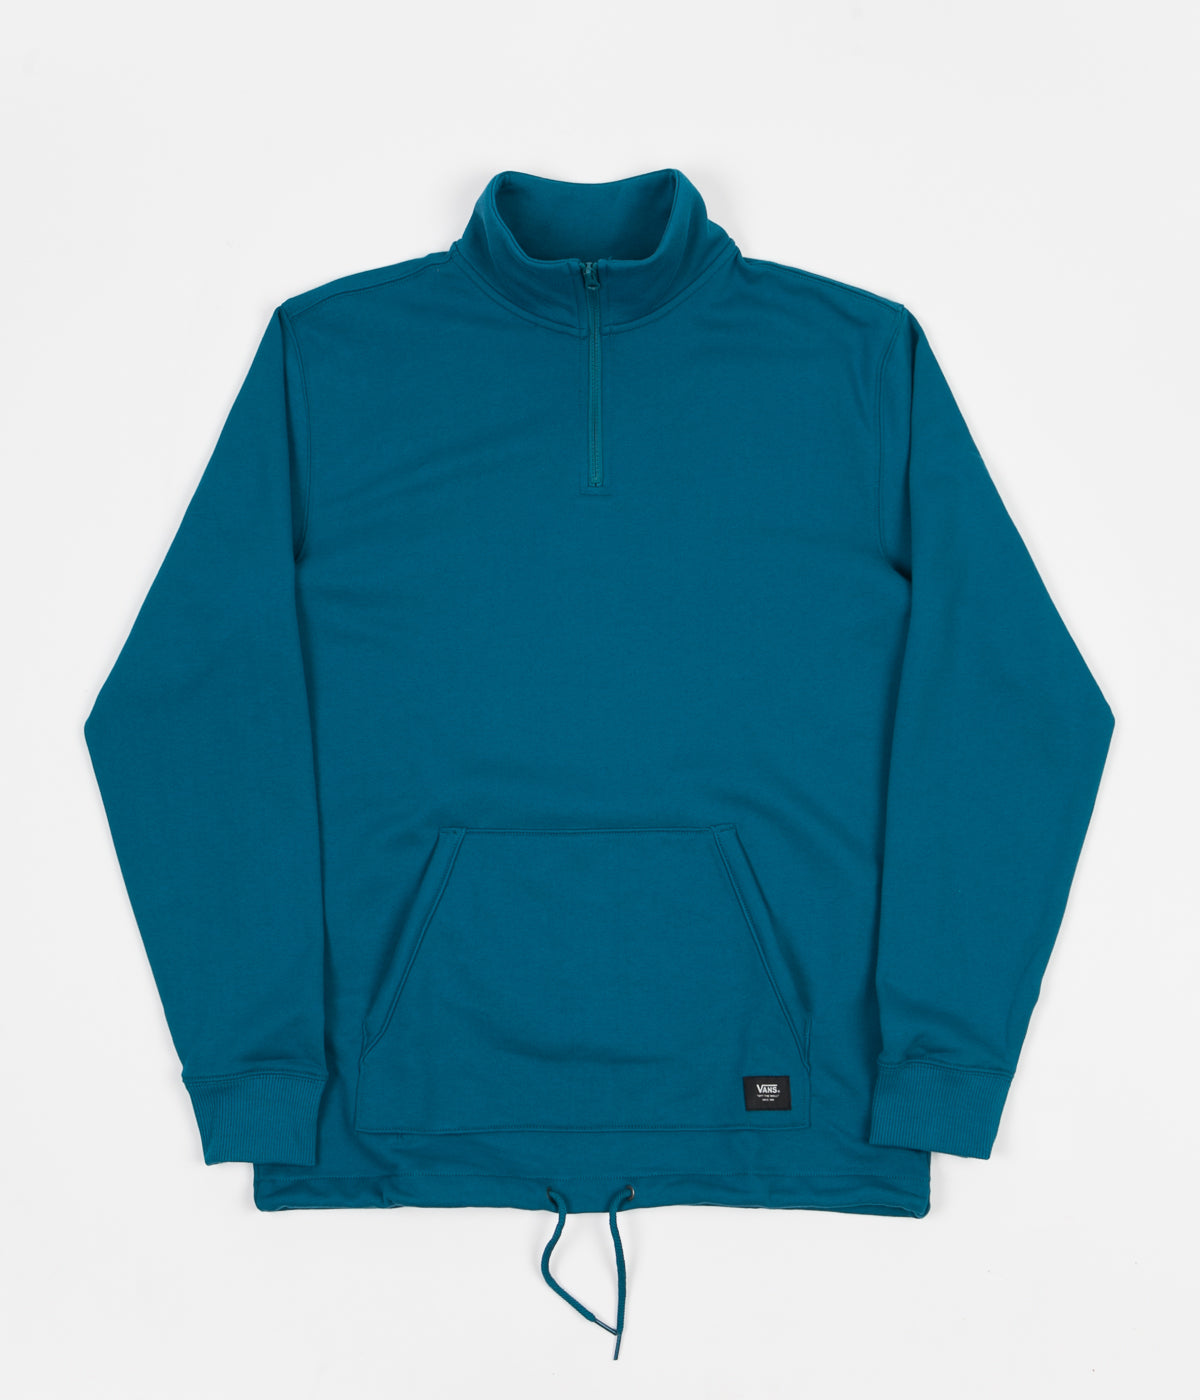 Vans Versa DX Quarter Zip Sweatshirt - Corsair